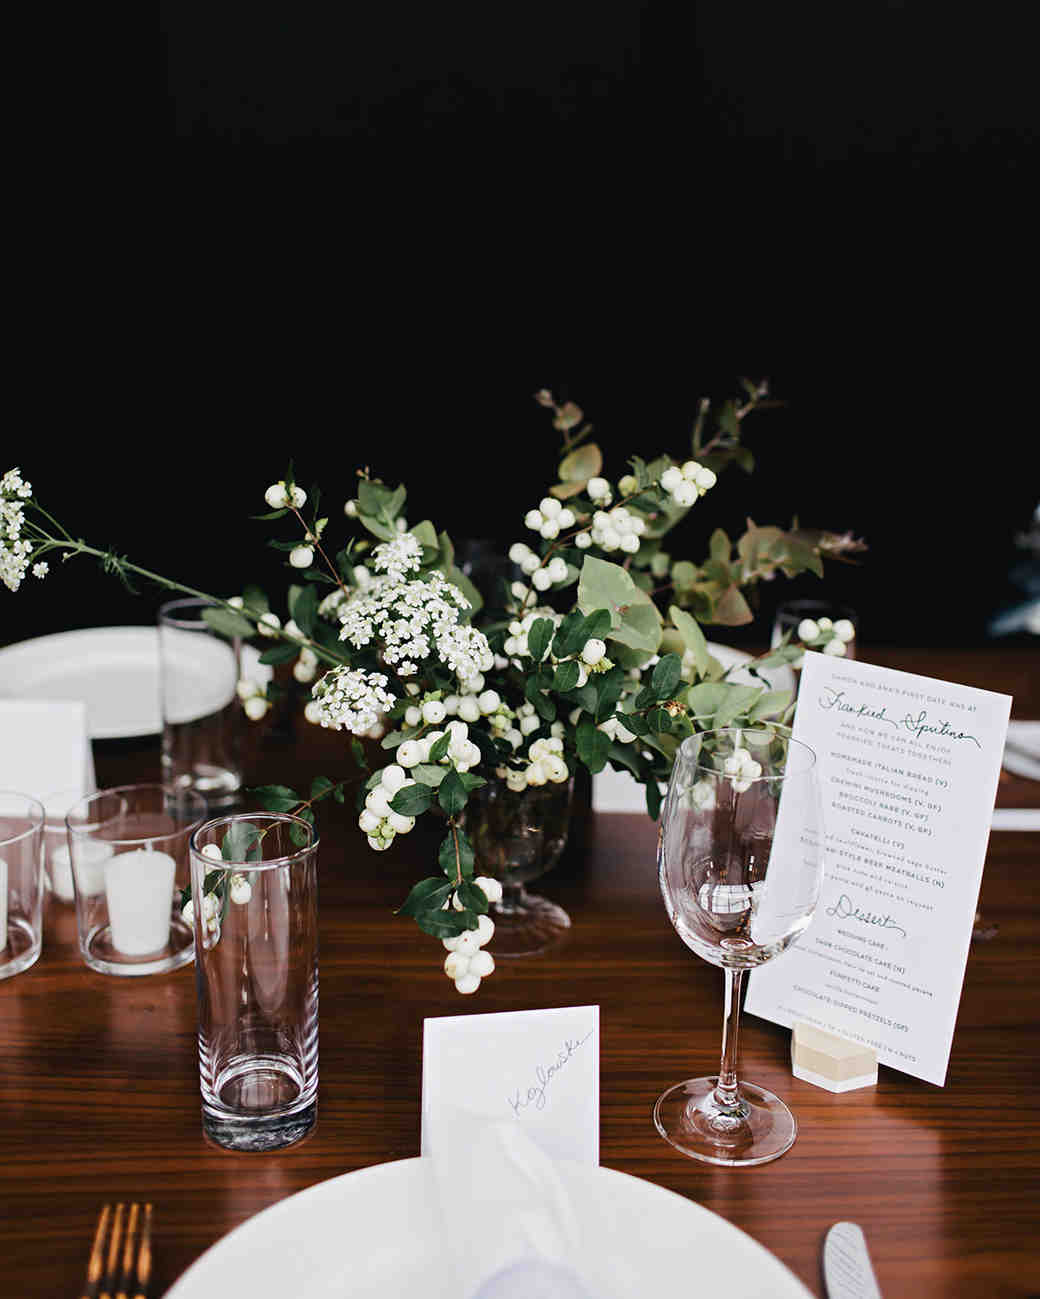 Wedding Table Decorations: Affordable Wedding Centerpieces That Still Look Elevated